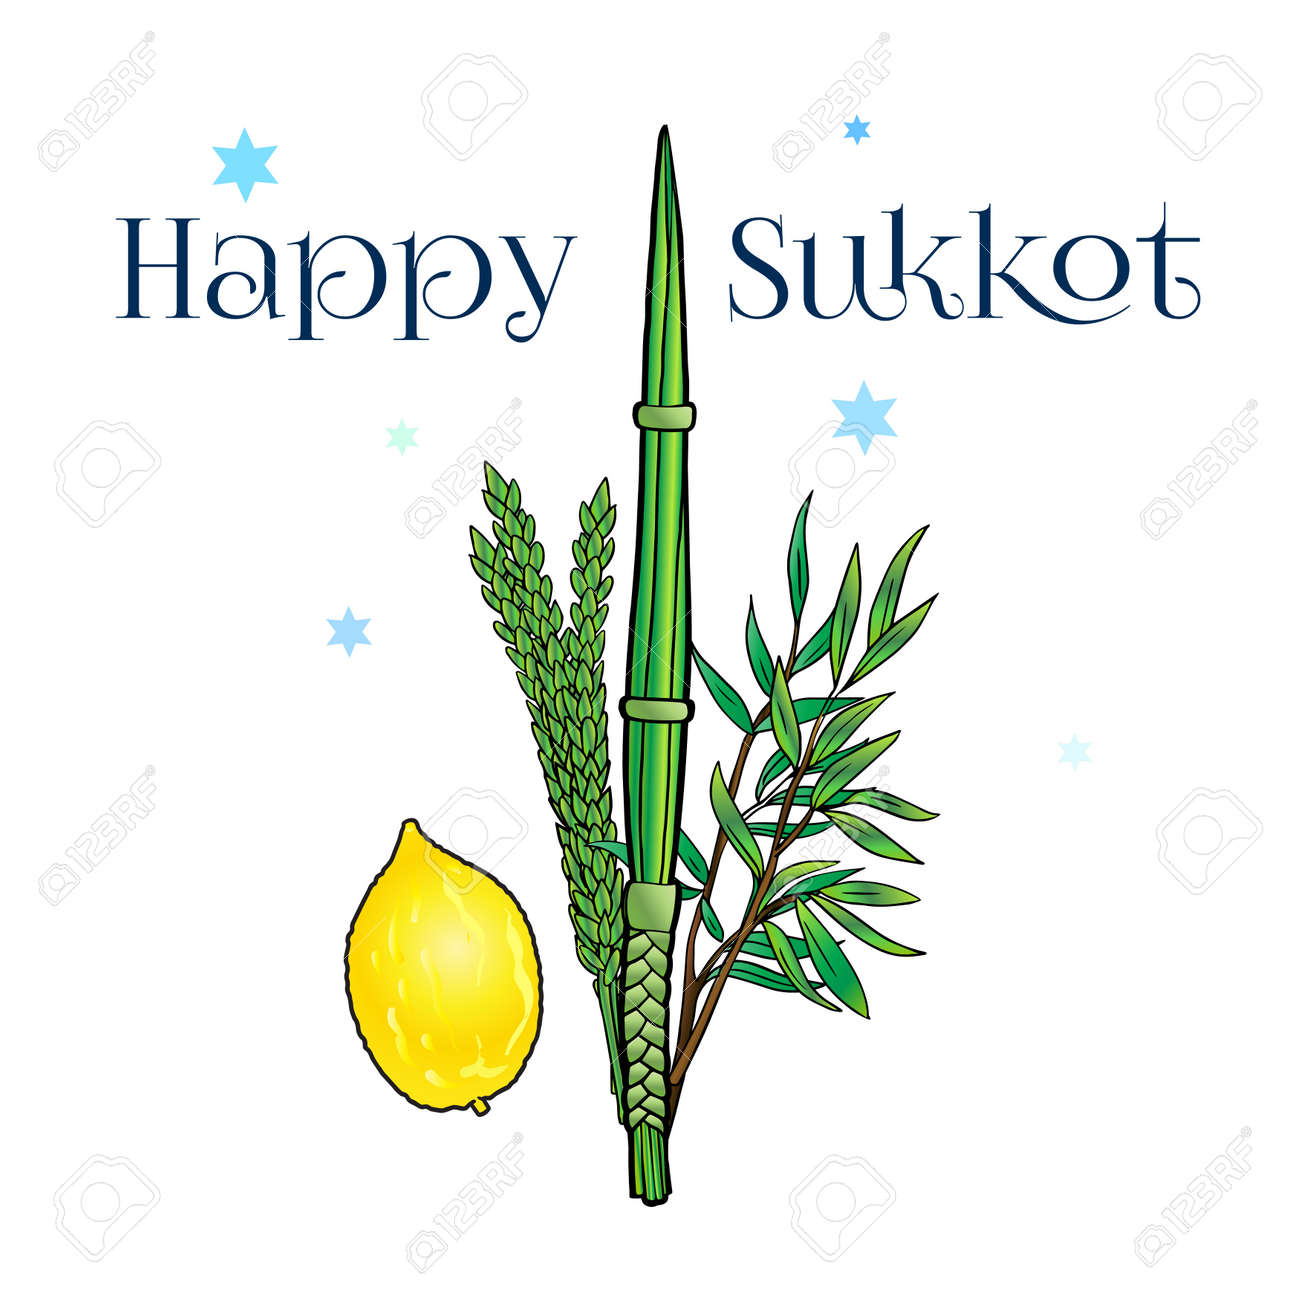 Happy sukkot greeting card with traditional four species lulav happy sukkot greeting card with traditional four species lulav etrog for jewish holiday sukkot m4hsunfo